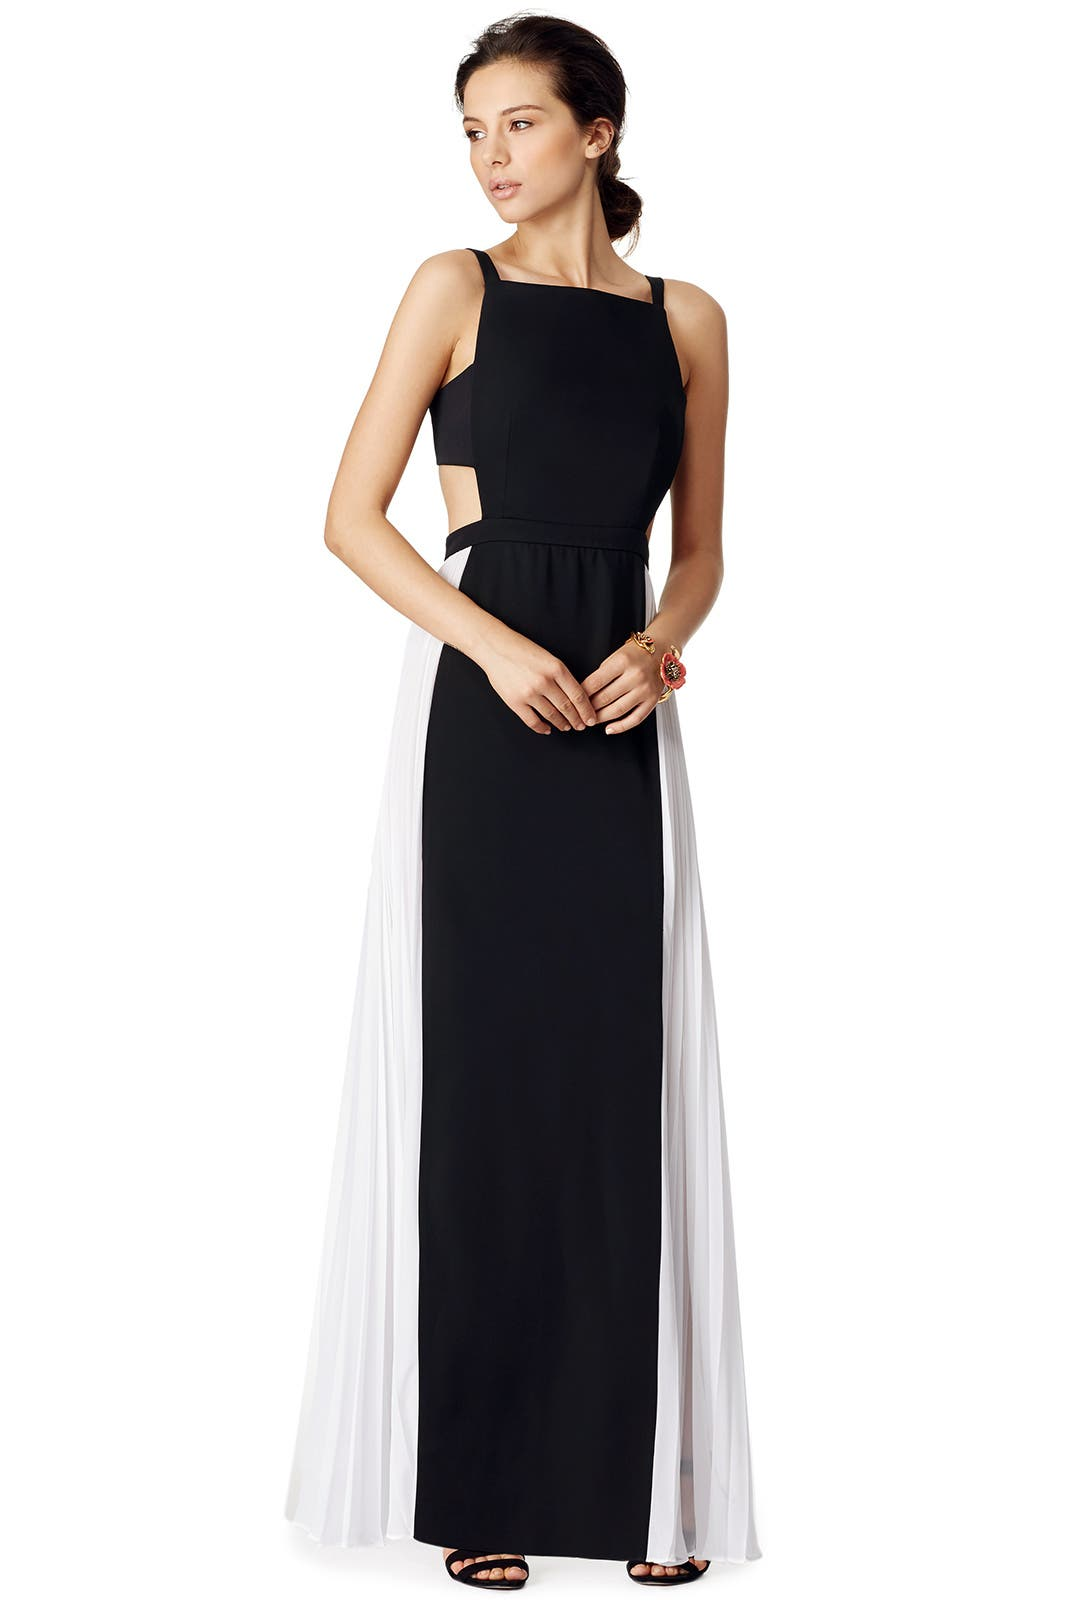 Square Space Gown by BCBGMAXAZRIA for $86 | Rent the Runway